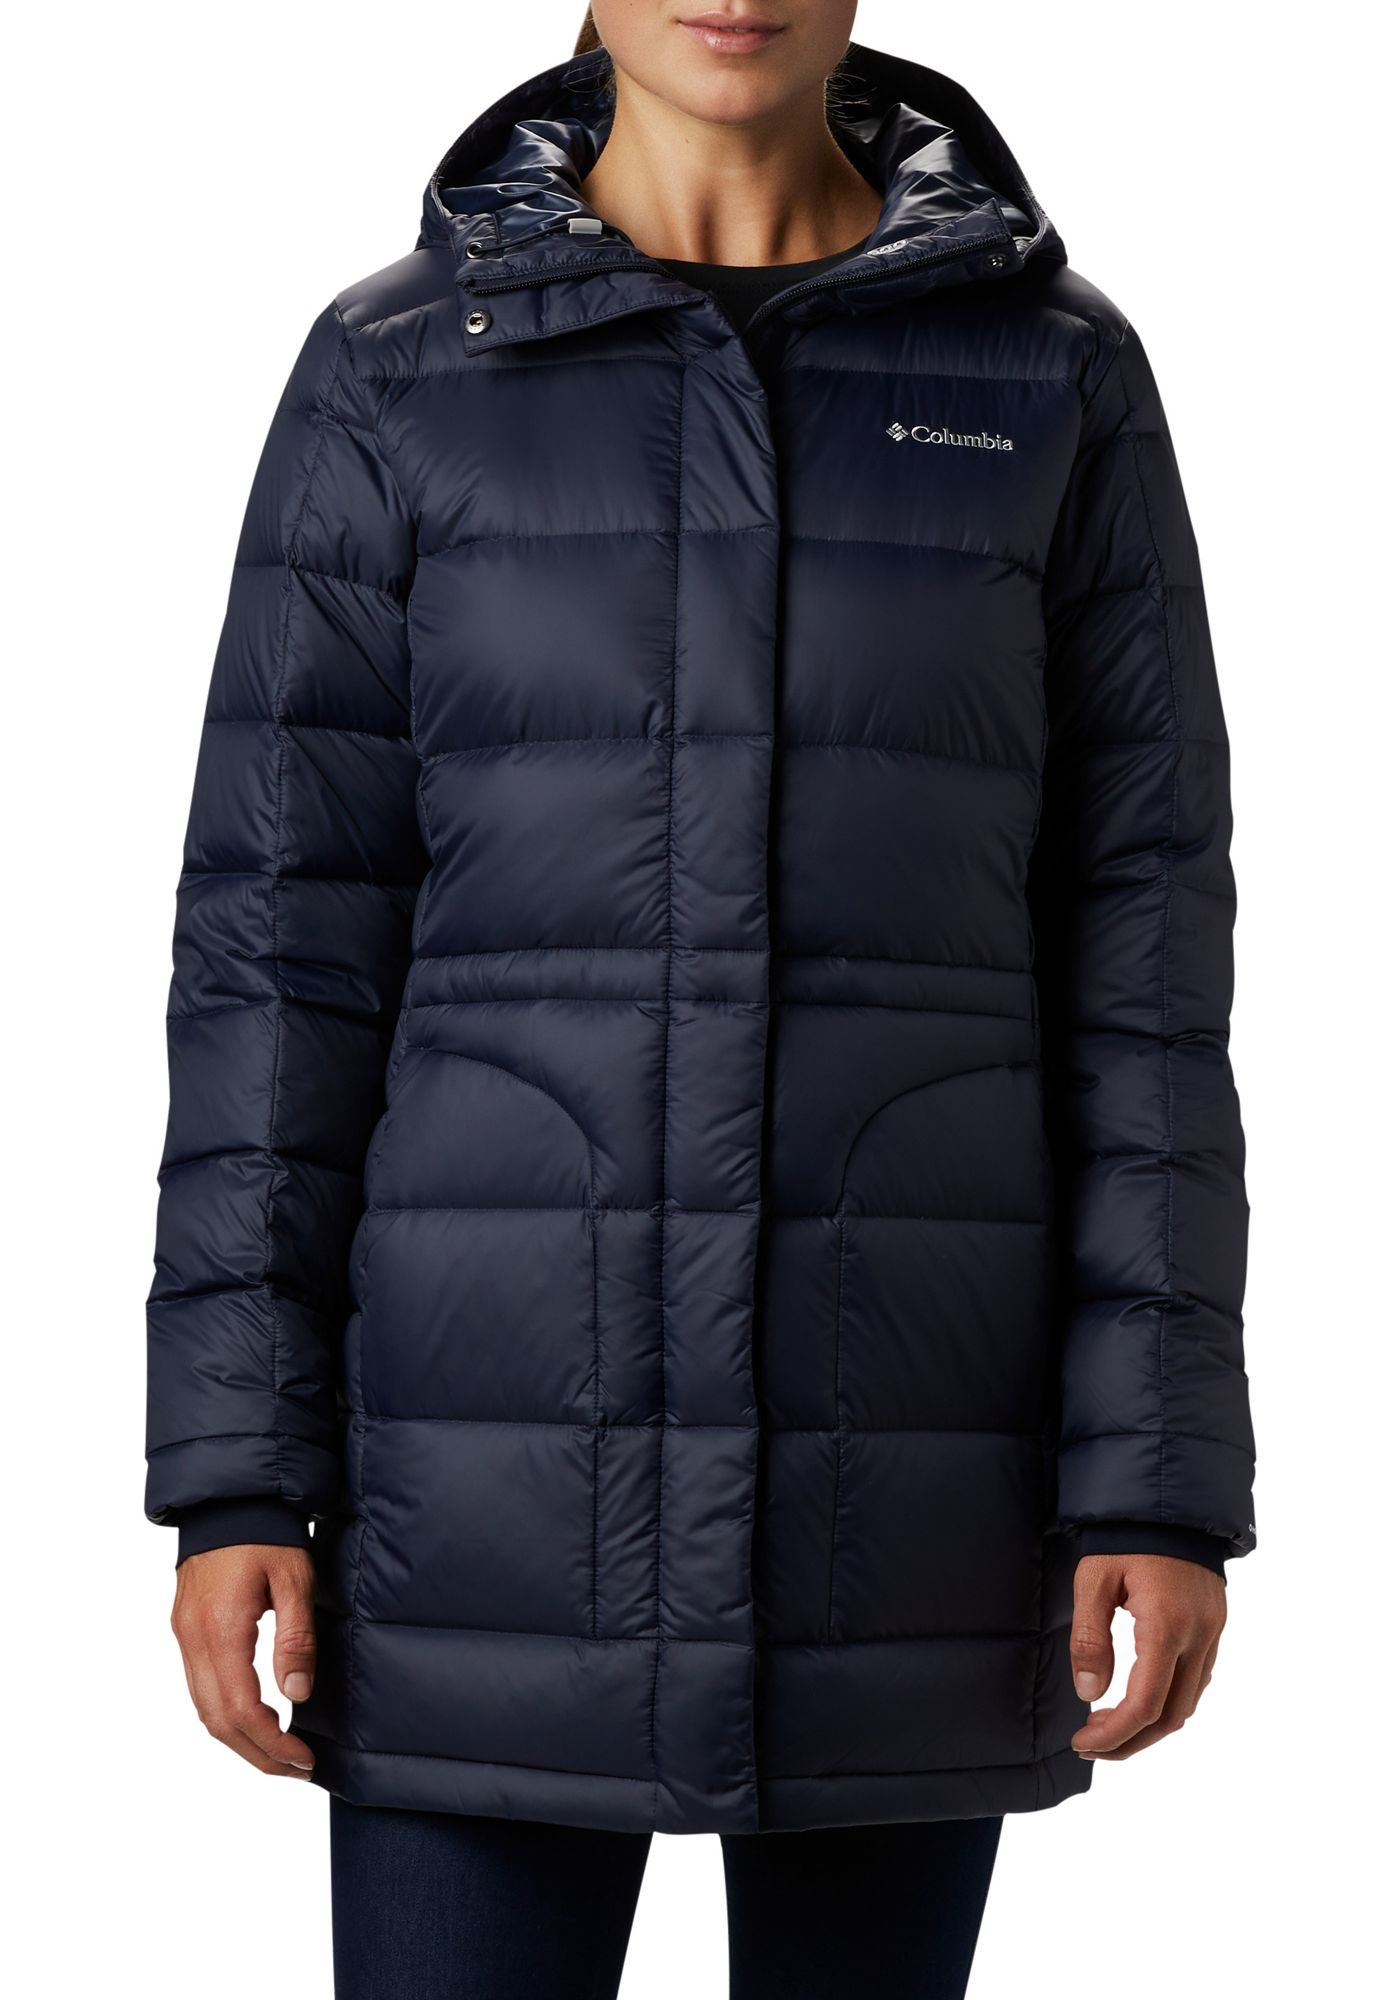 Columbia Women's Hexbreaker Down Jacket